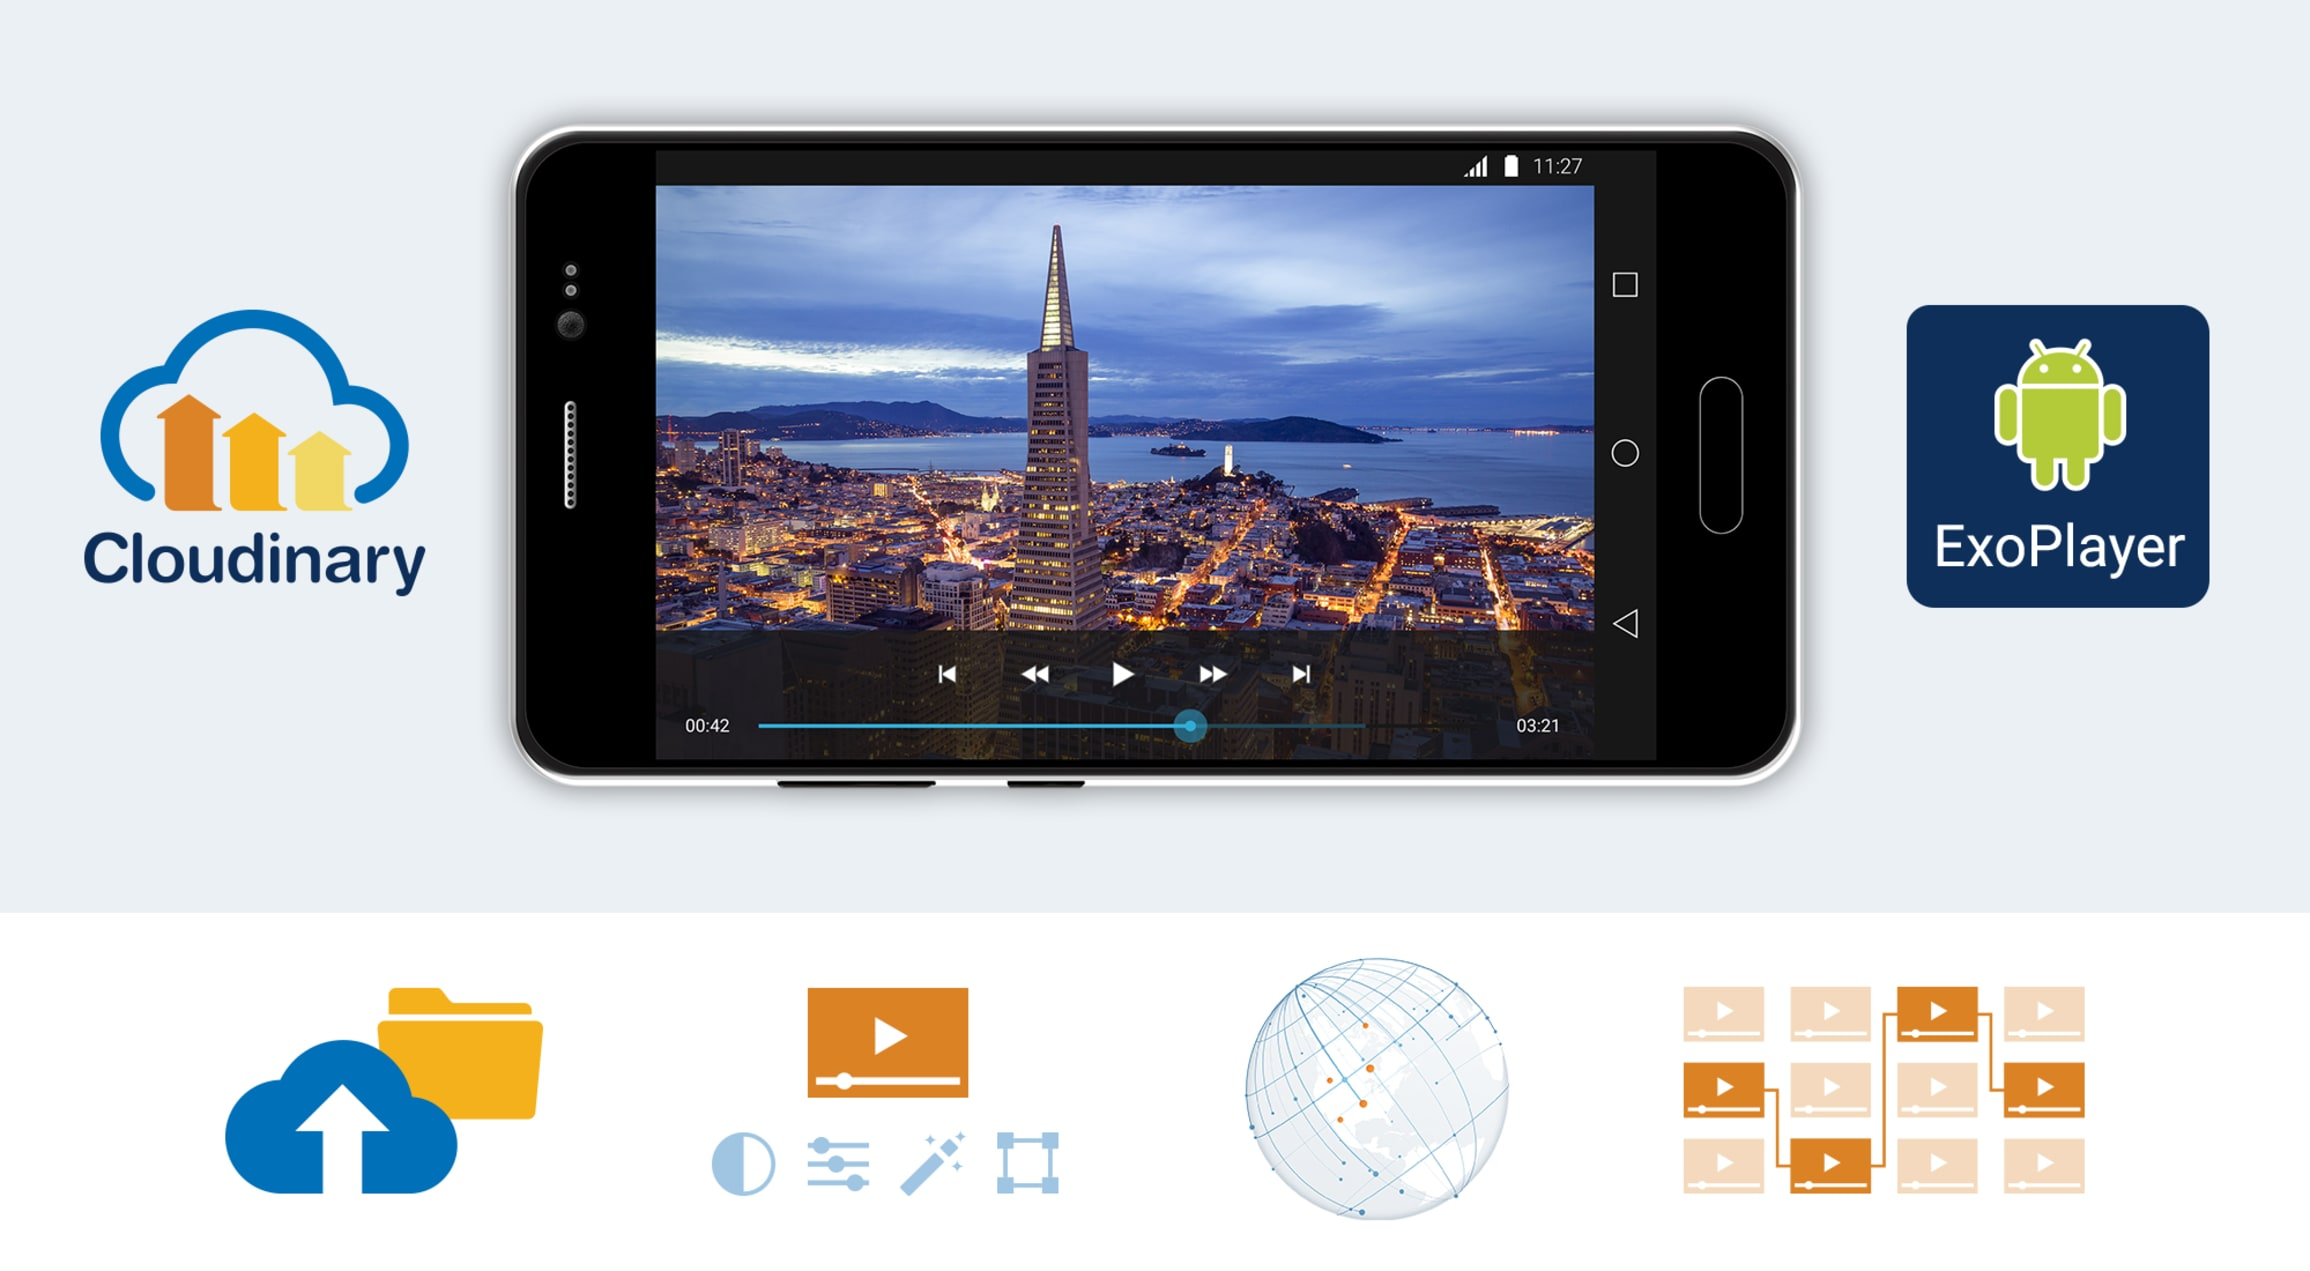 ExoPlayer Android Tutorial: Easy Video Delivery and Editing